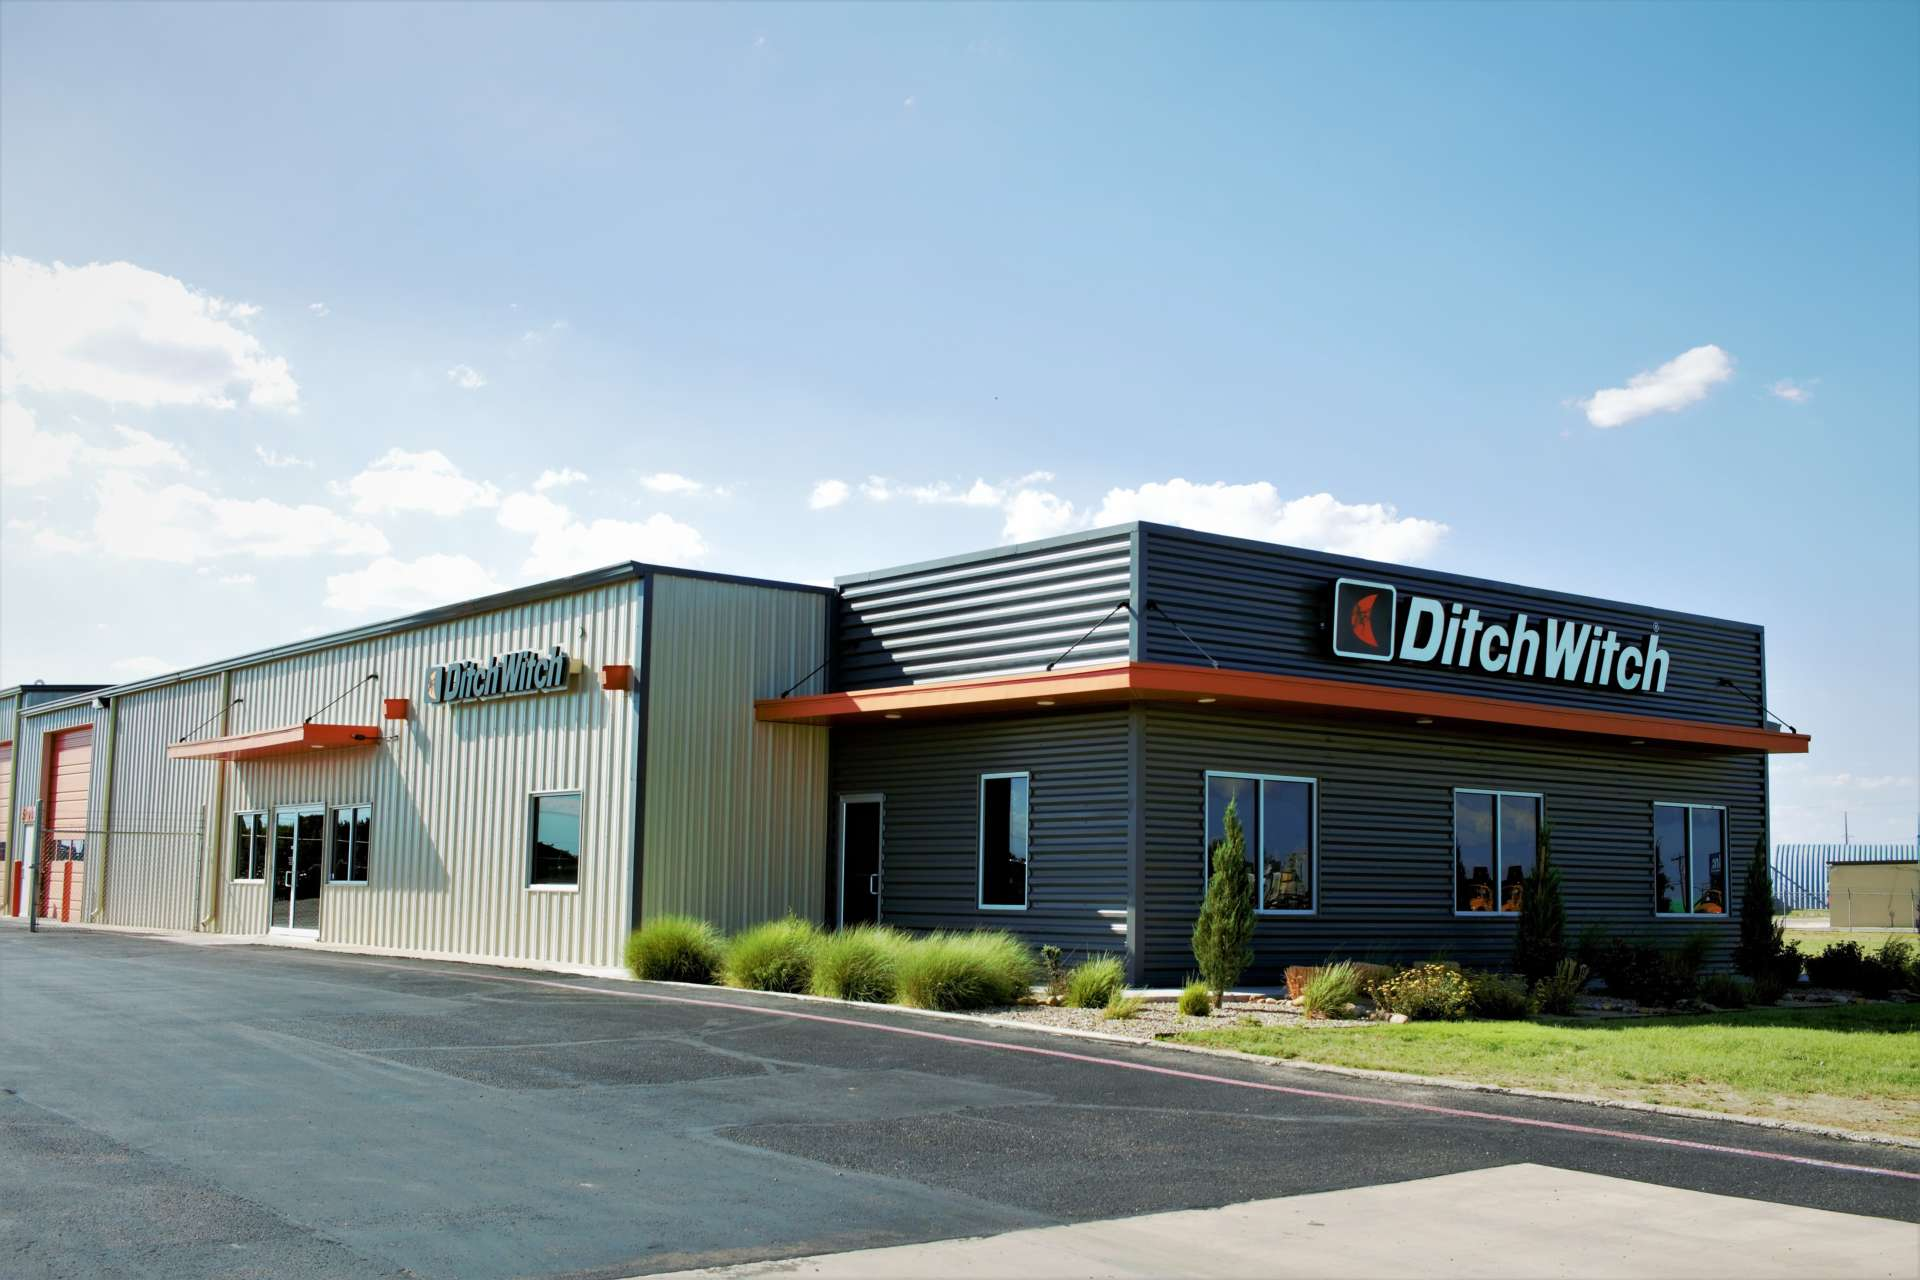 ditch witch building with light clouds in the back